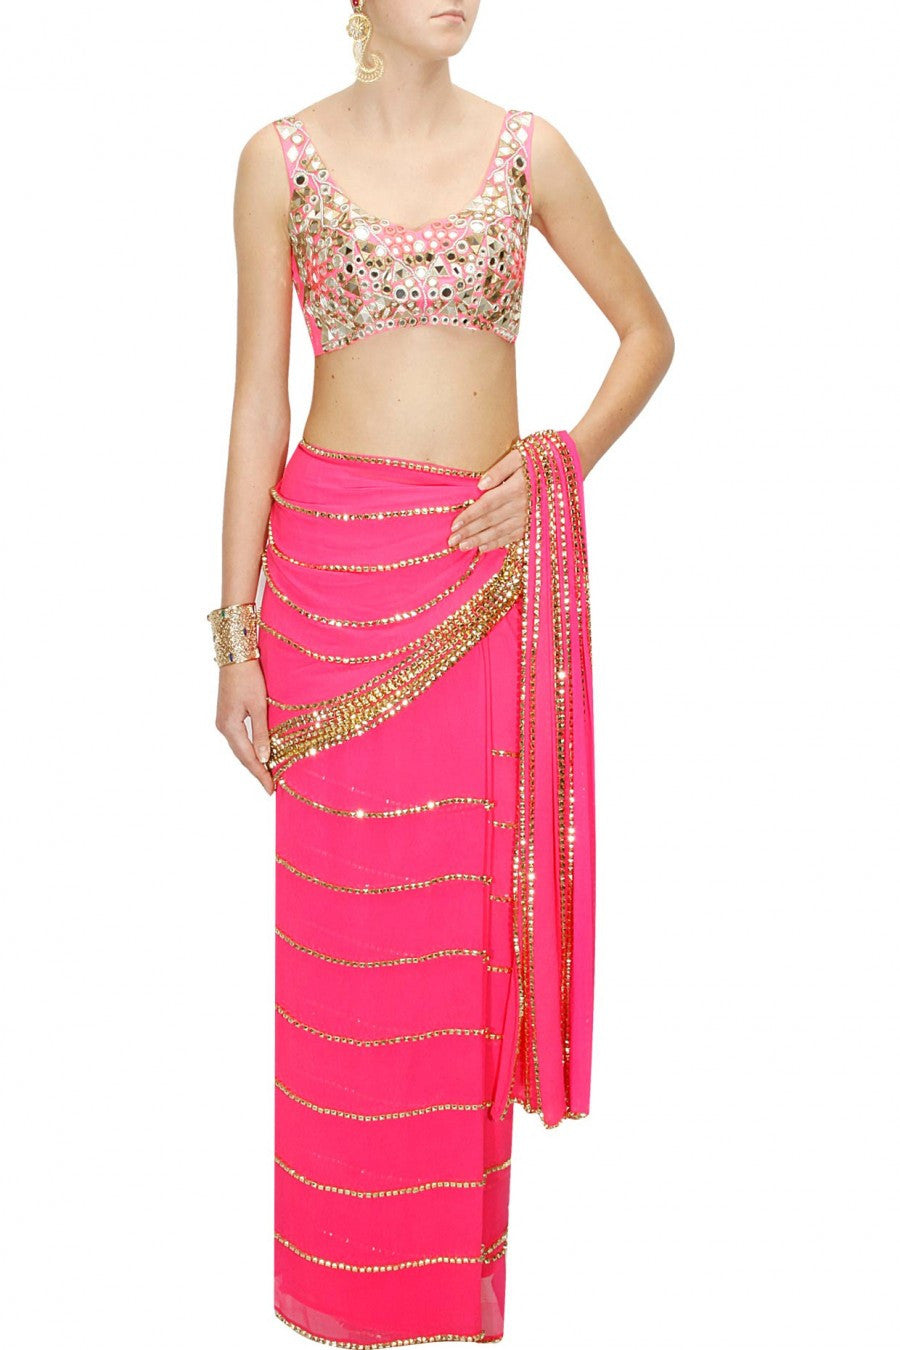 Pink colour sari at Panache Haute Couture